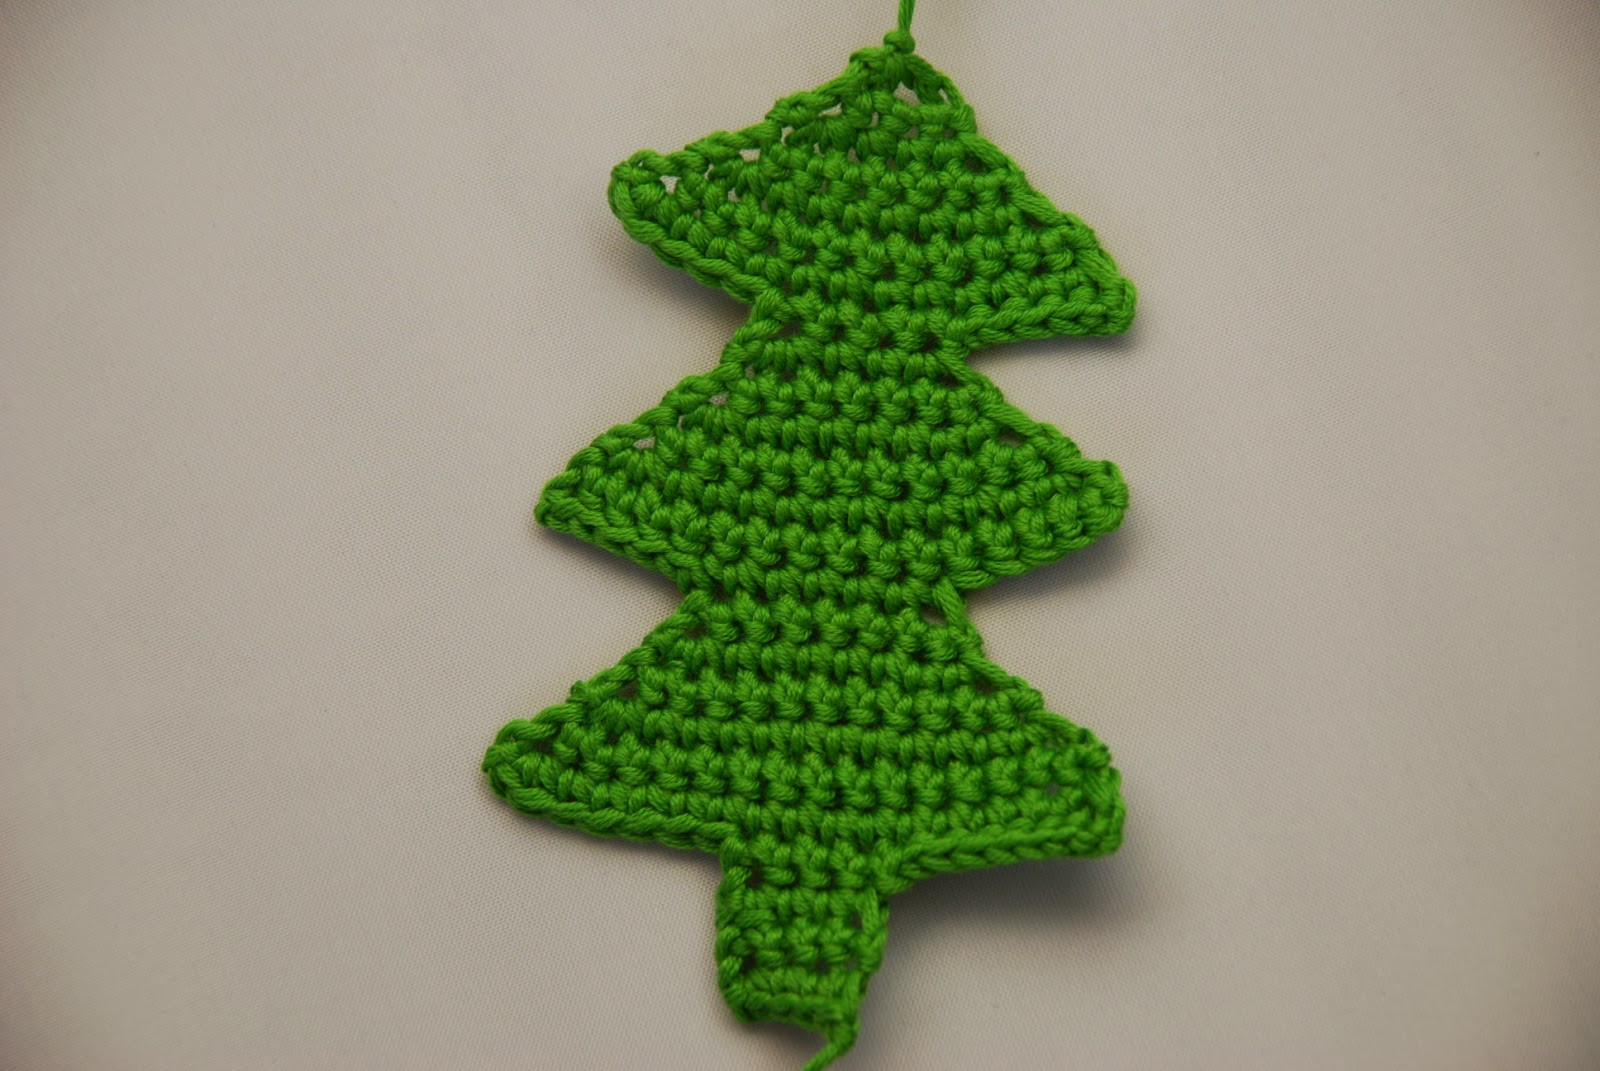 Beautiful Amjaylou Crochet Christmas Tree Decoration Crochet Christmas Trees Of Marvelous 46 Ideas Crochet Christmas Trees